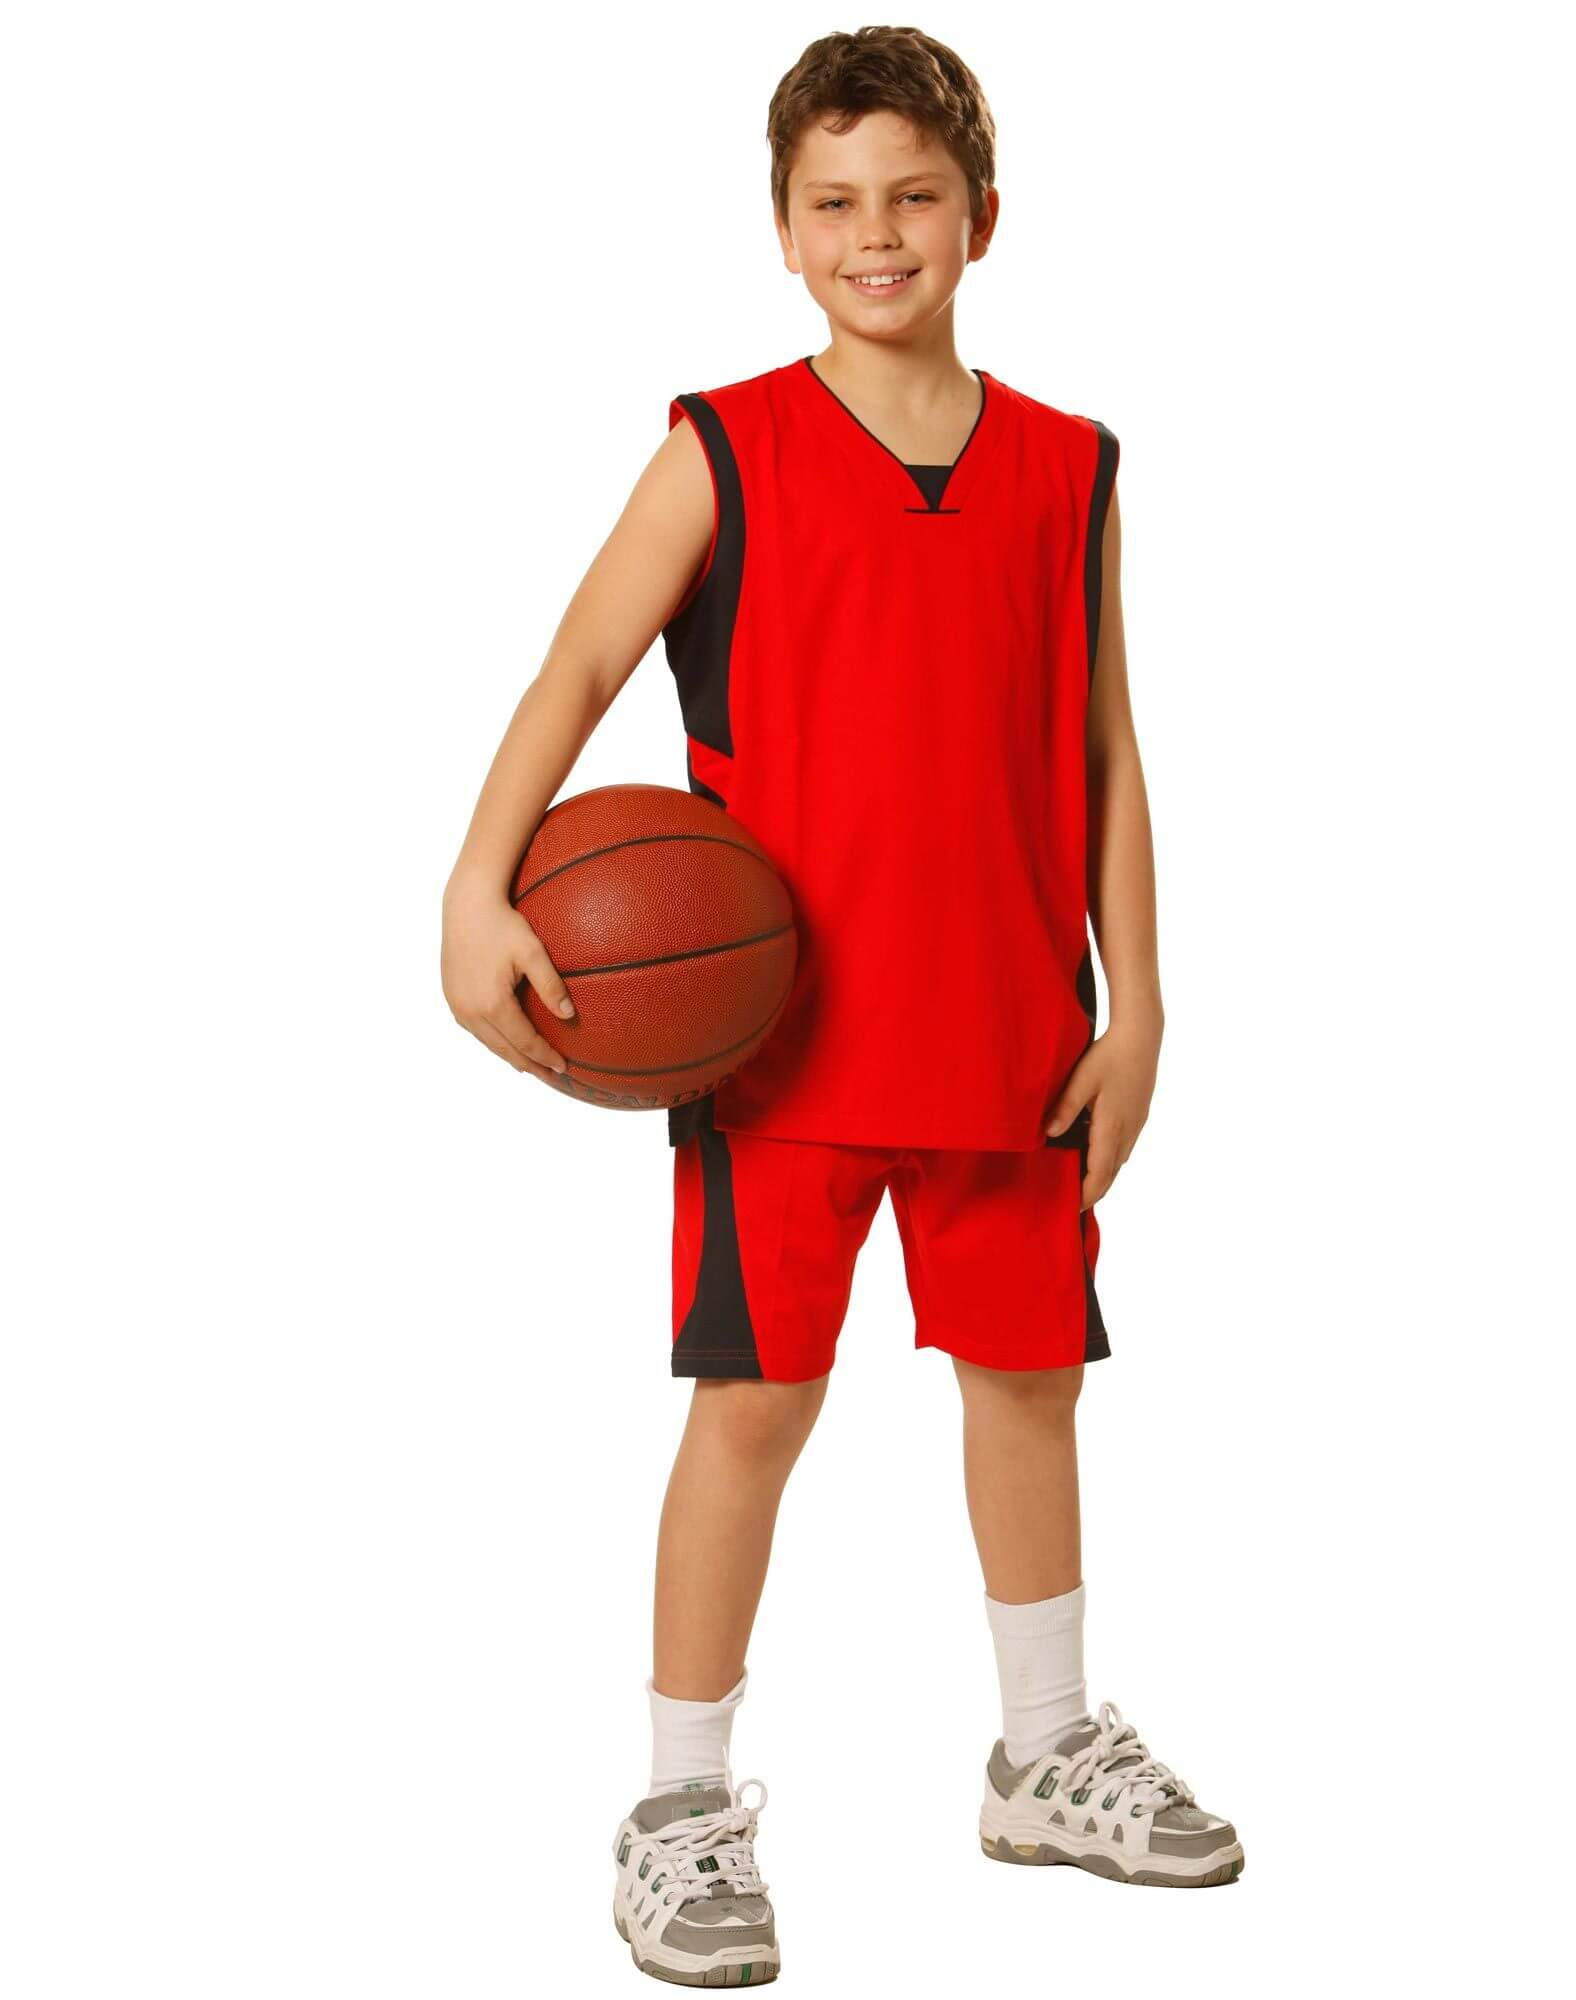 Kids Basketball Jerseys Manufacturers in Nanded